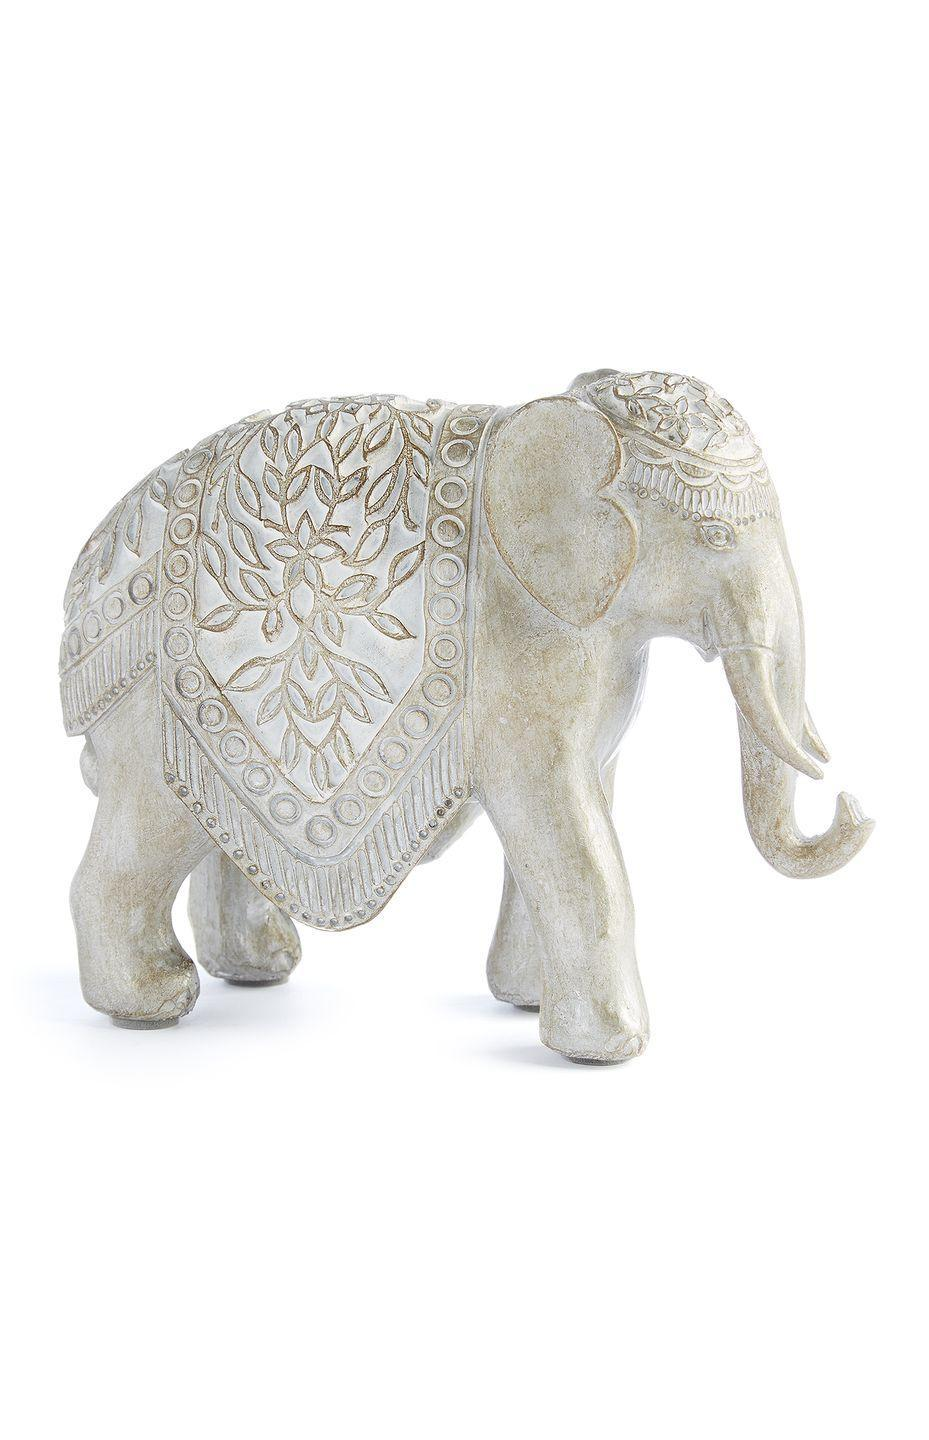 <p>Elephant ornament in gold, price unknown</p>